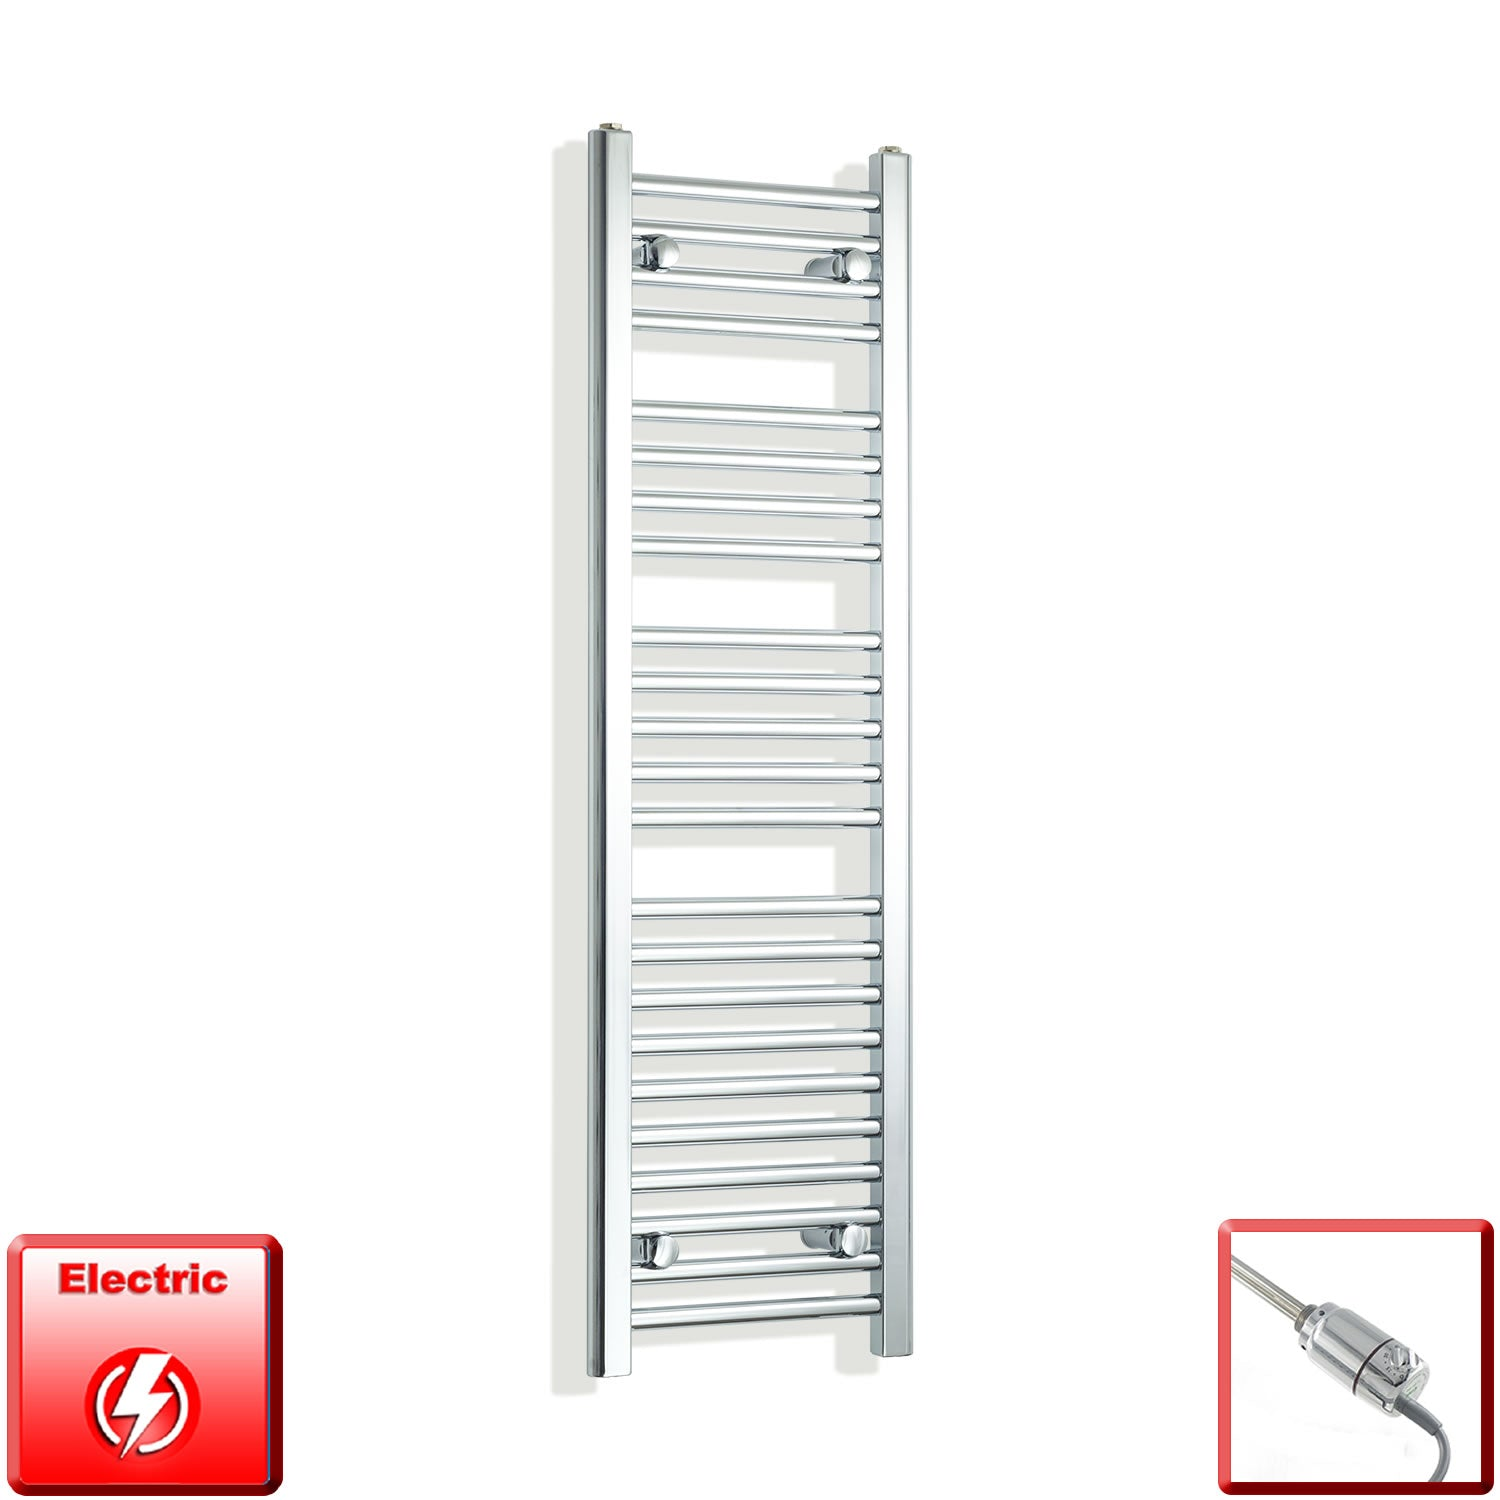 350mm Wide 1200mm High Pre-Filled Chrome Electric Towel Rail Radiator With Thermostatic GT Element